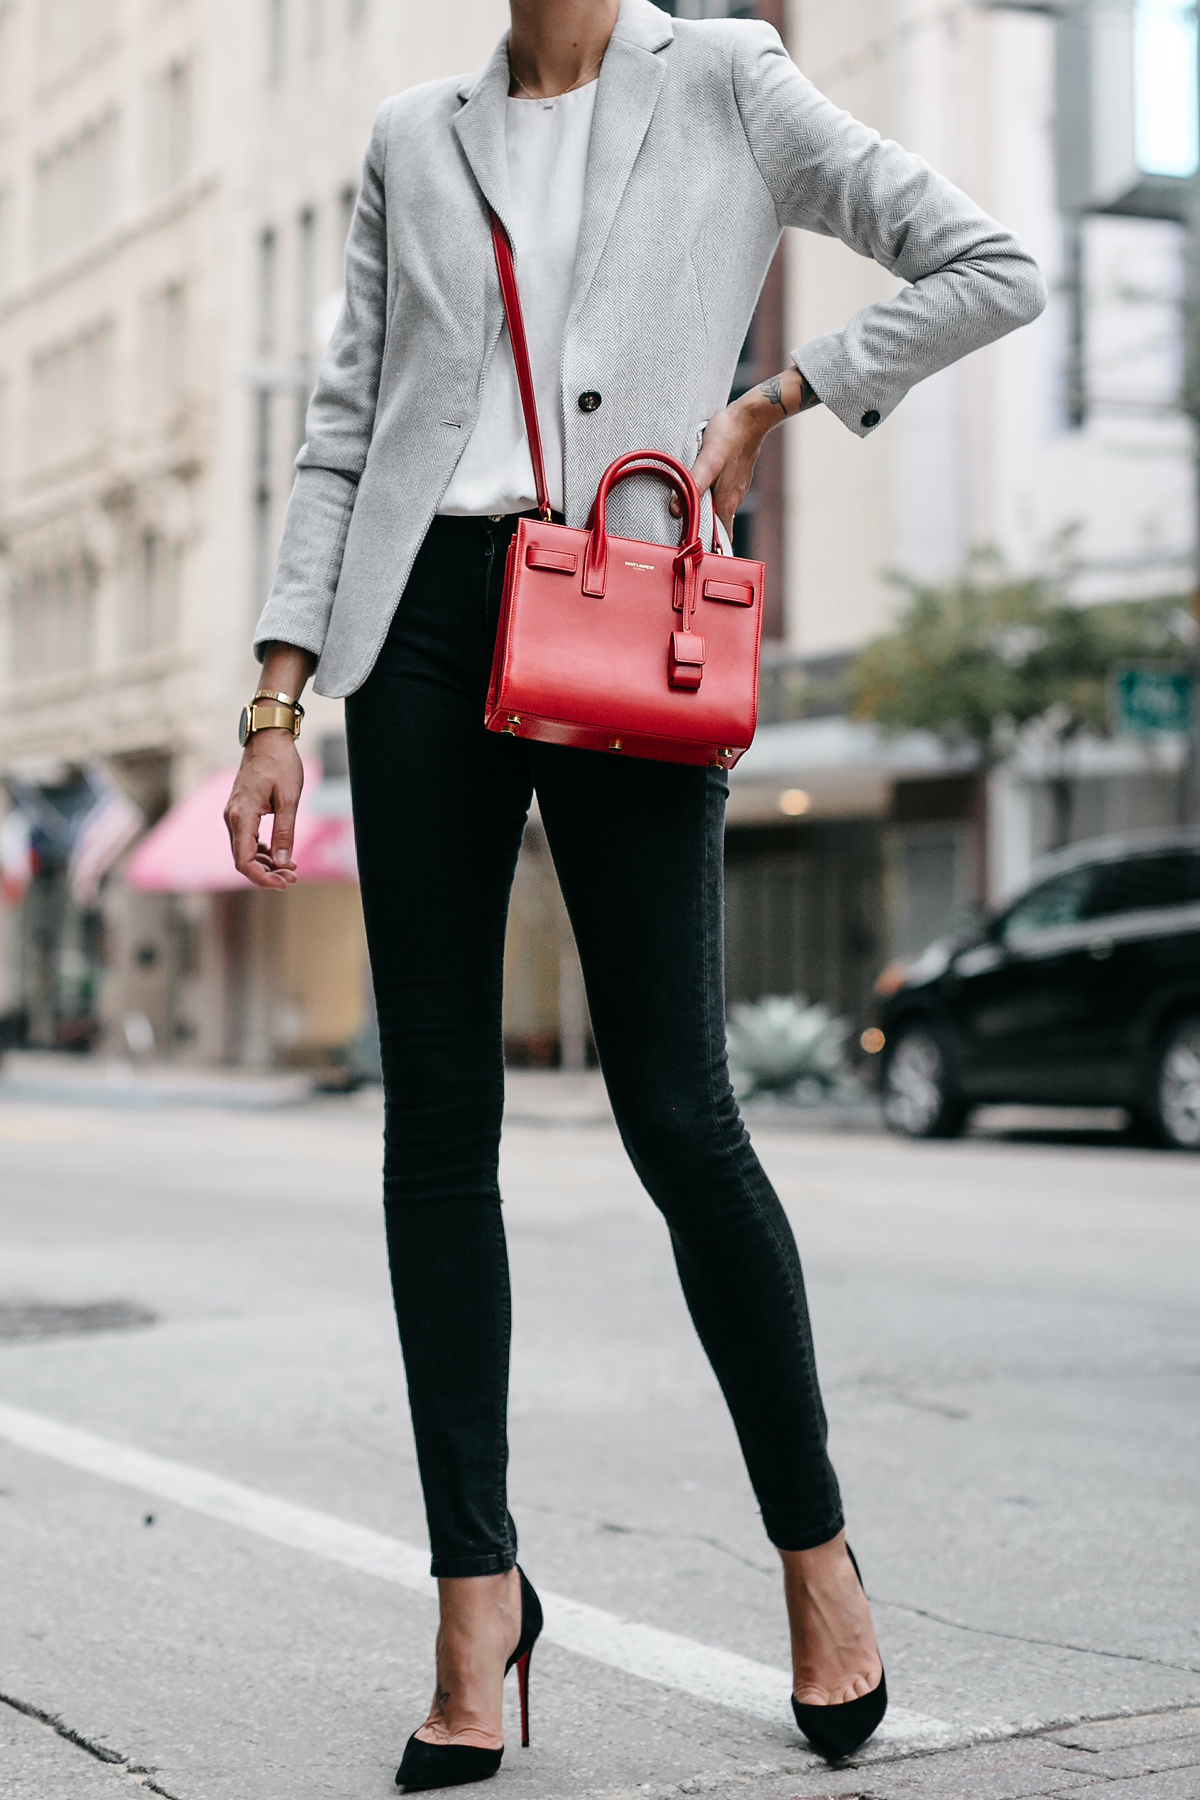 Grey Blazer White Top Black Skinny Jeans Black Pumps Saint Laurent Sac de Jour Nano Red Fashion Jackson Dallas Blogger Fashion Blogger